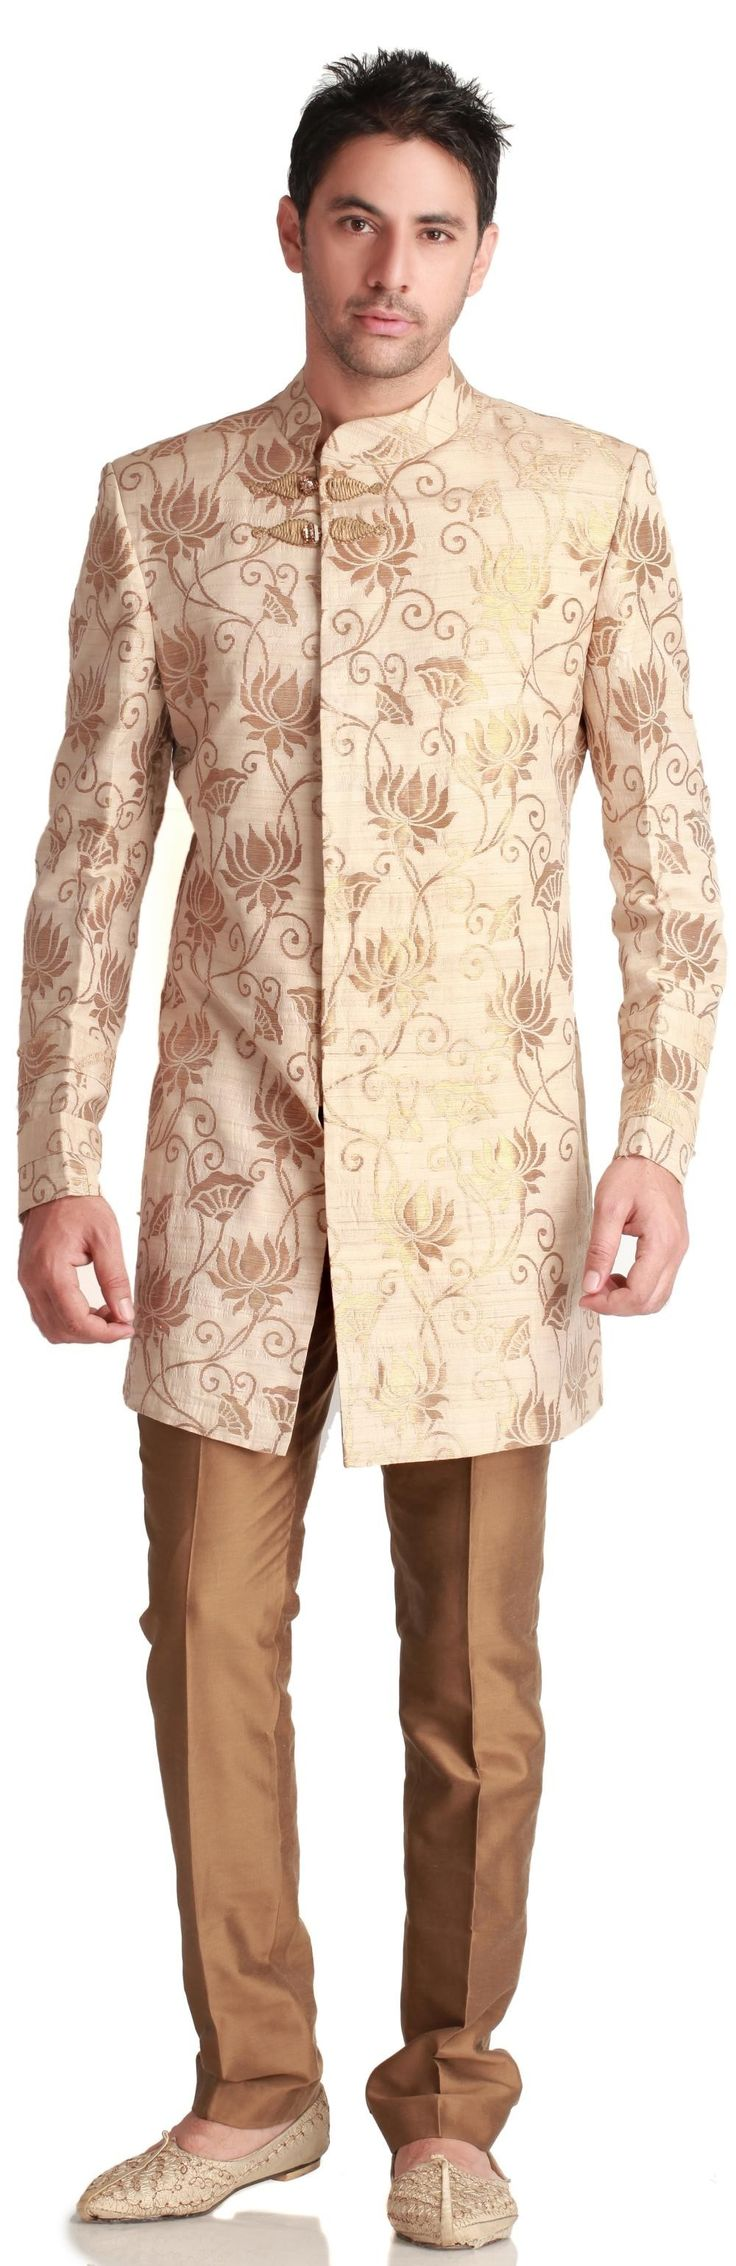 Ivory Gold Short Sherwani - #Sherwani - MEN'S WEAR